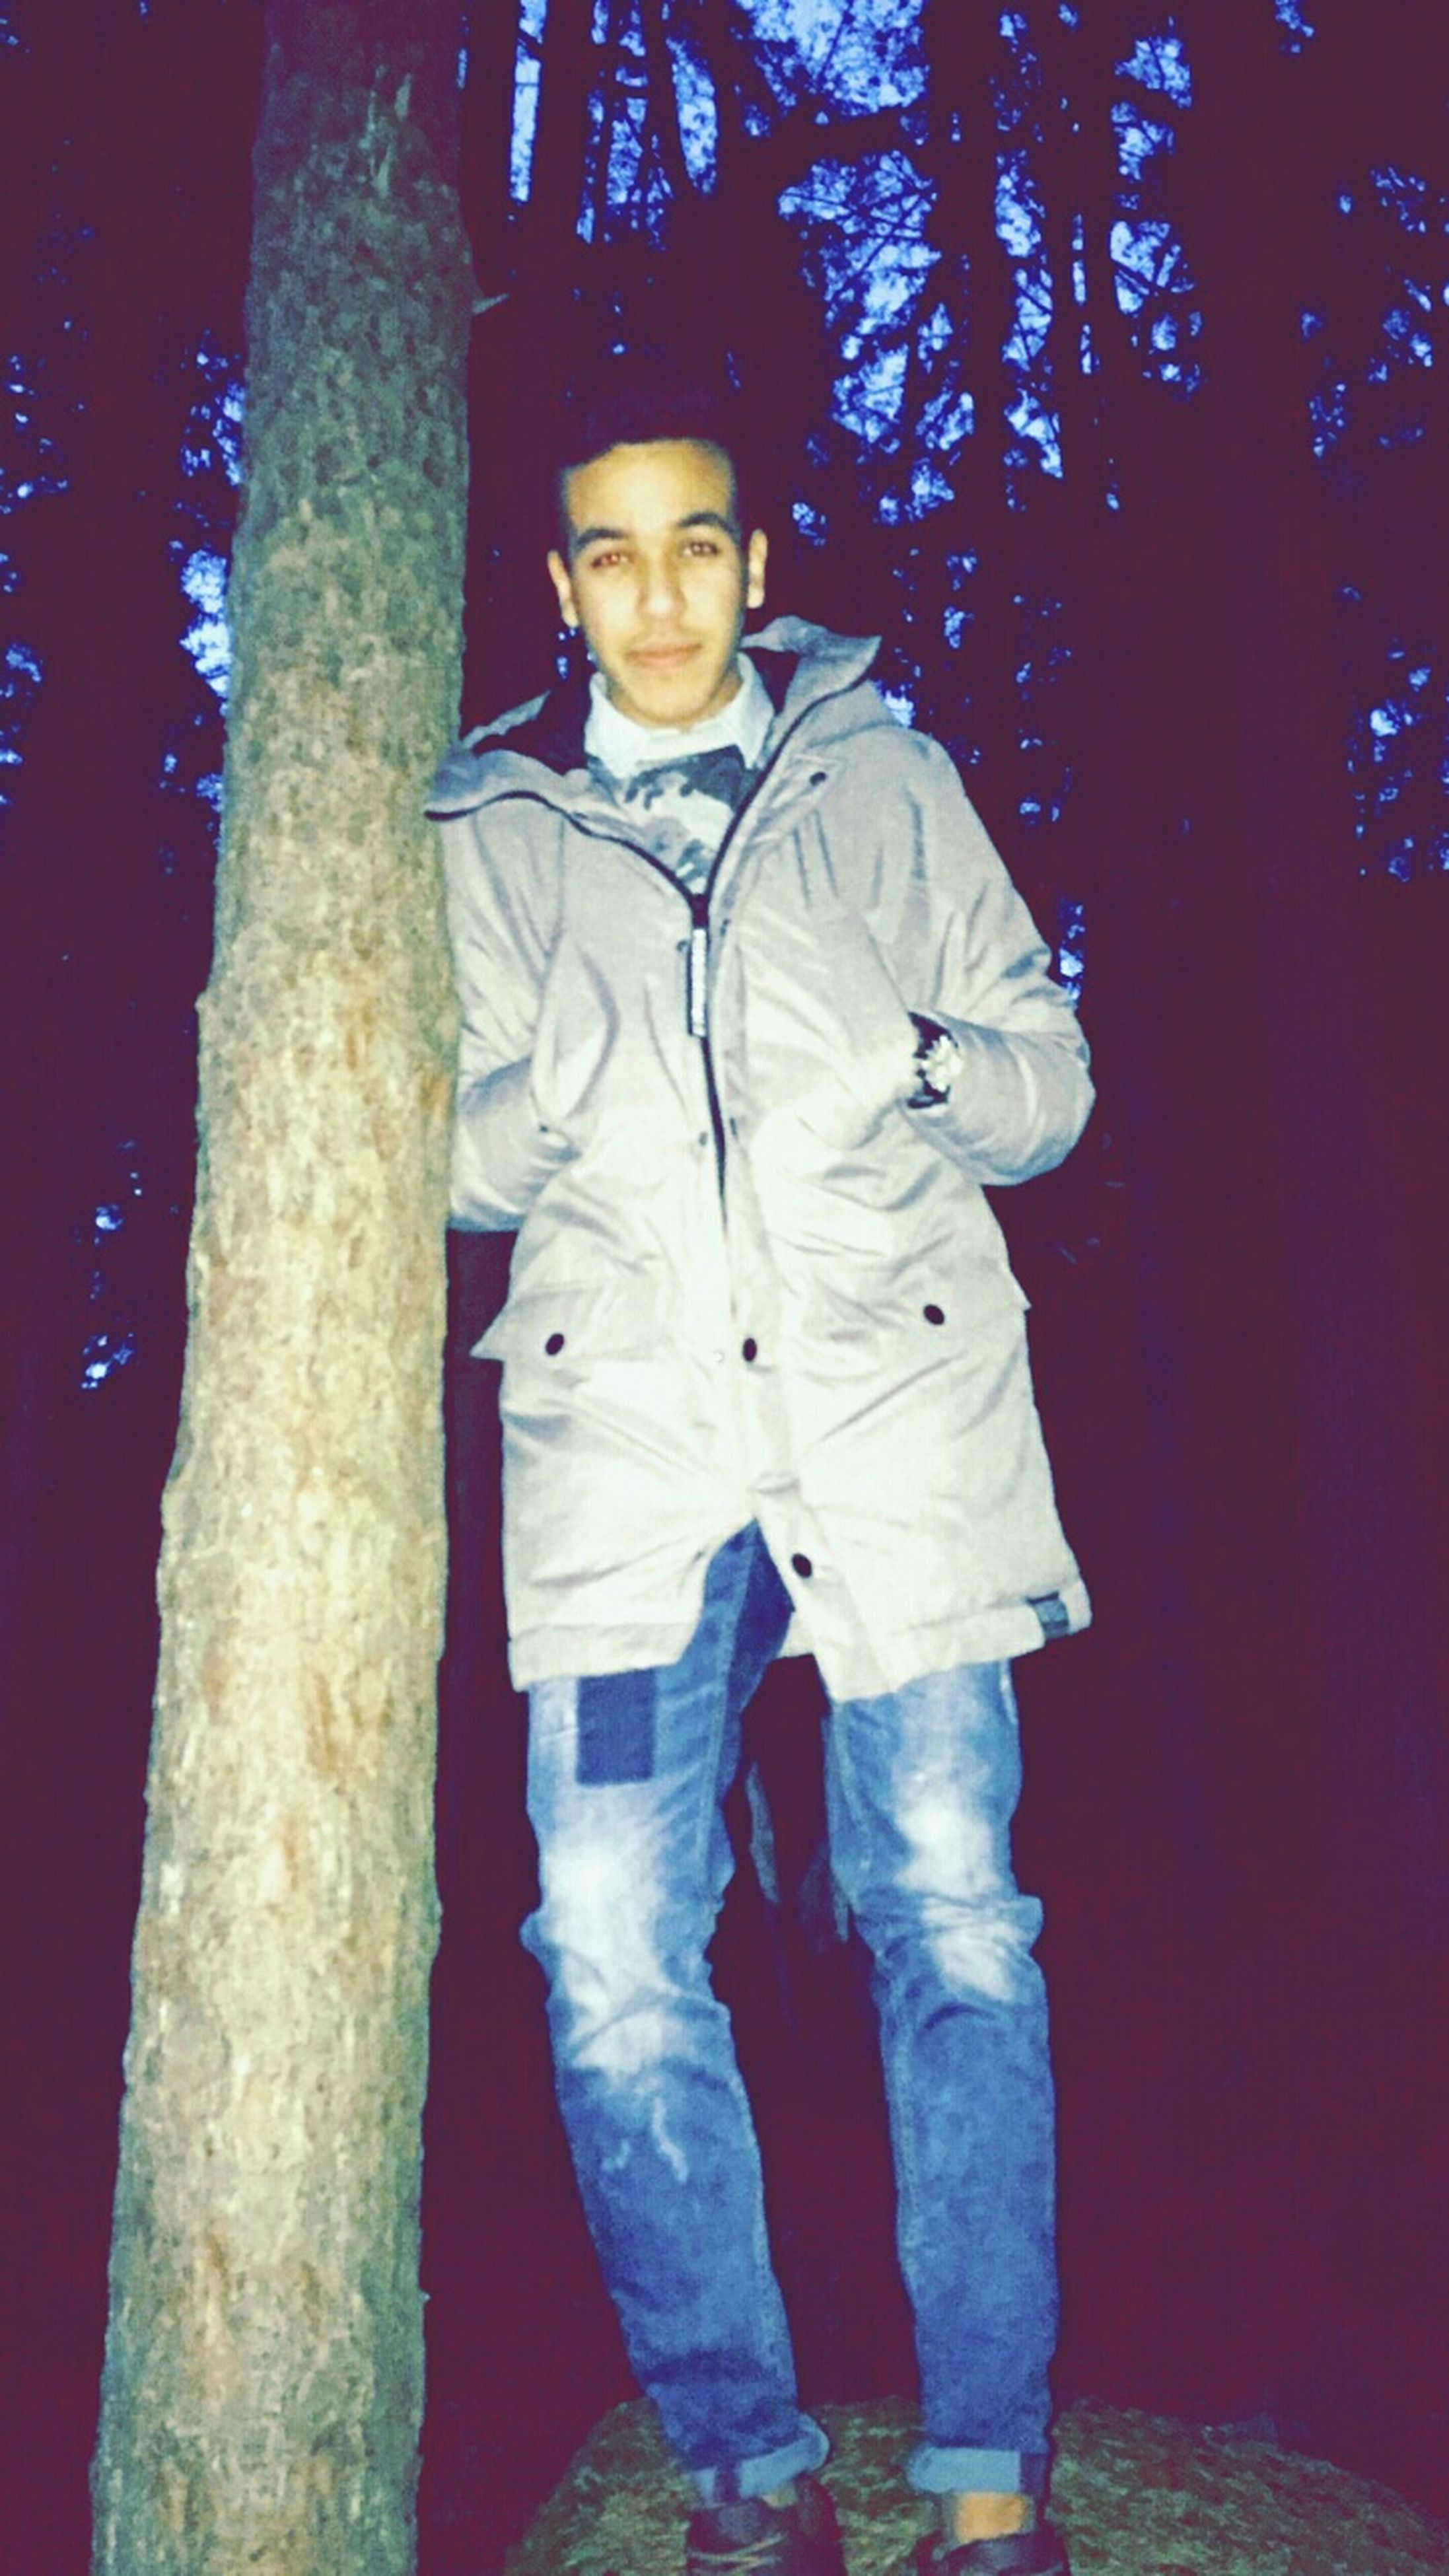 standing, lifestyles, casual clothing, leisure activity, full length, rear view, three quarter length, front view, tree, men, warm clothing, childhood, night, outdoors, waist up, religion